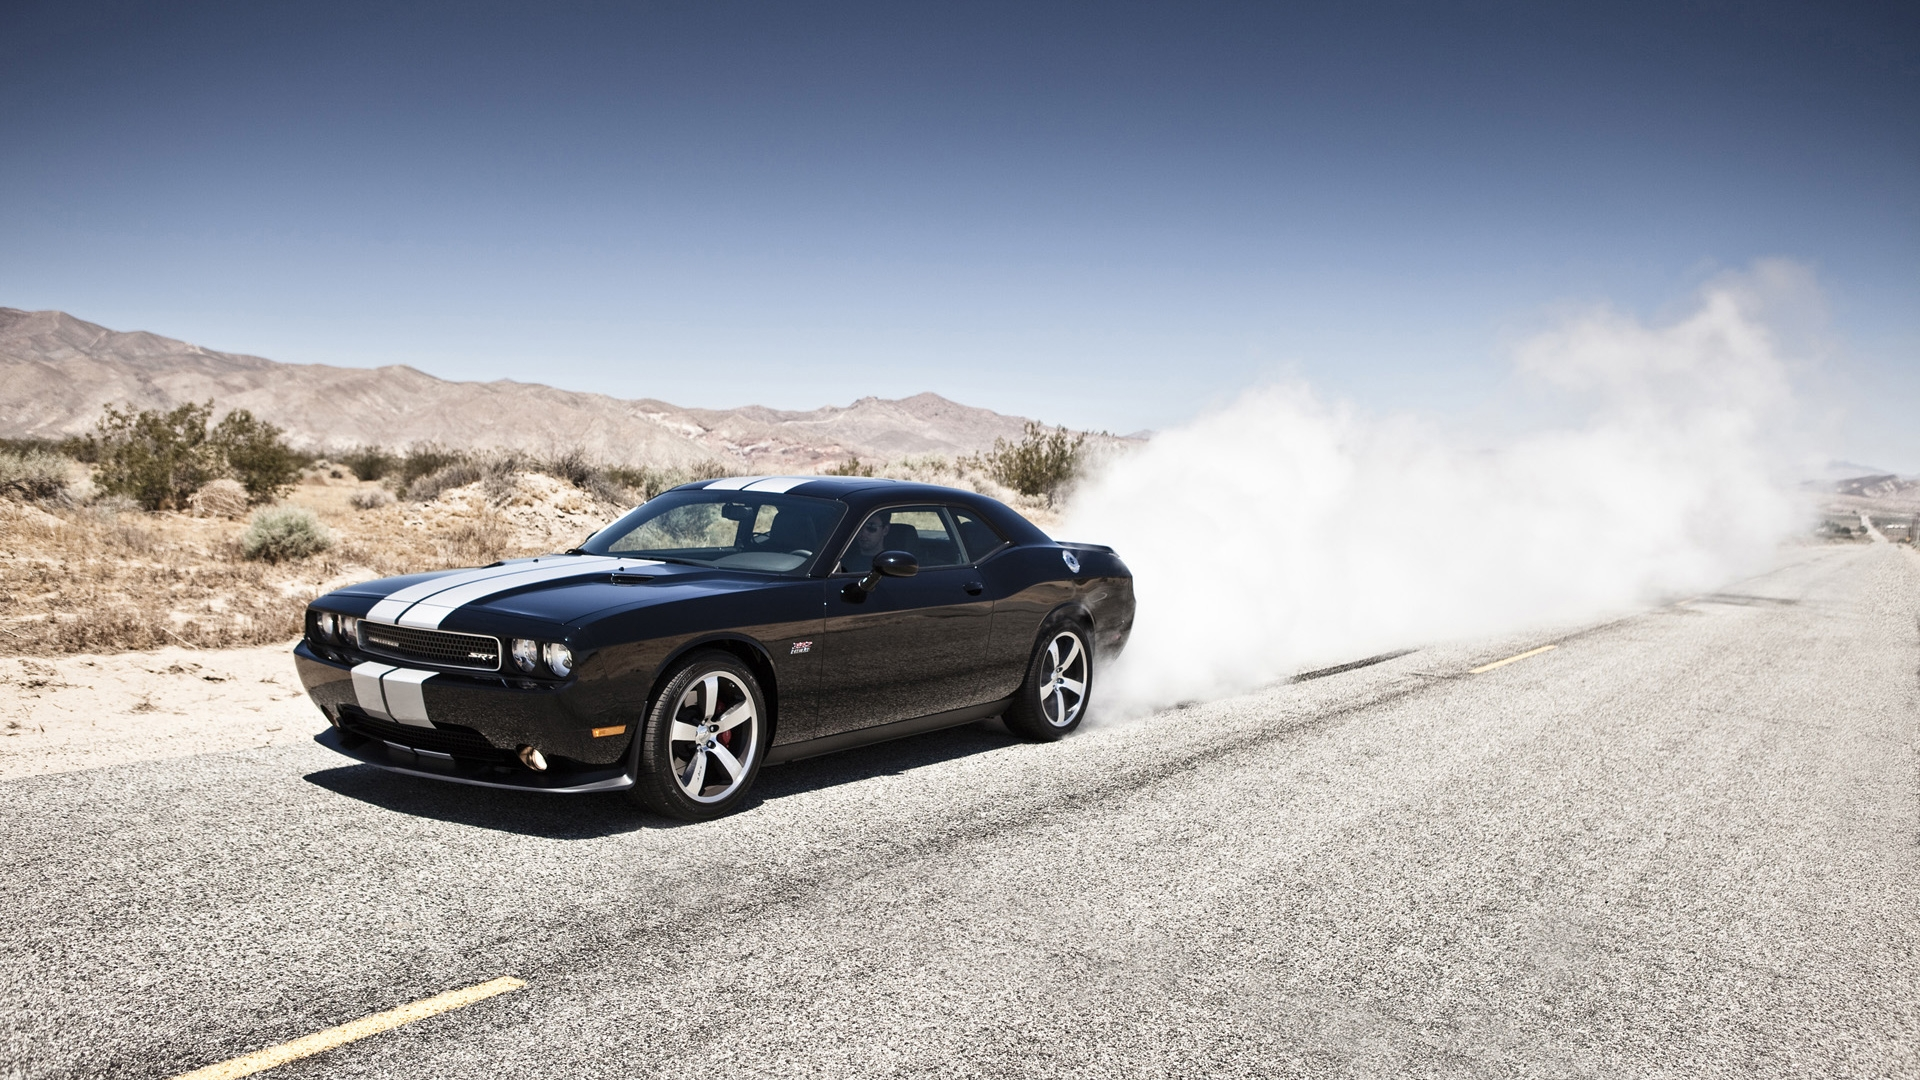 dodge challenger wallpaper hd9. Cars Review. Best American Auto & Cars Review